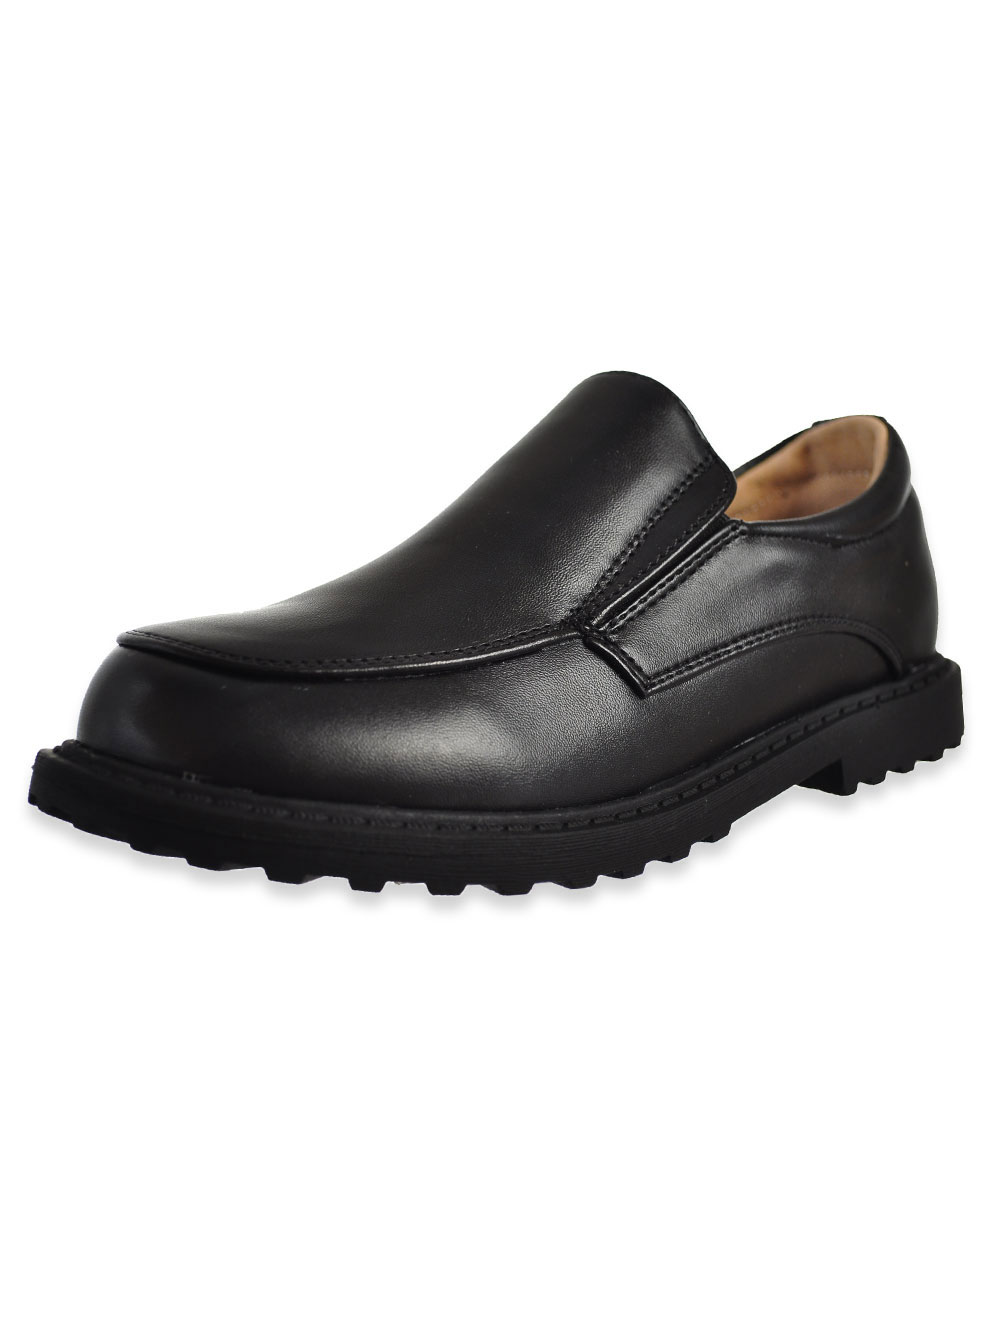 Boys' Slip-On Loafers